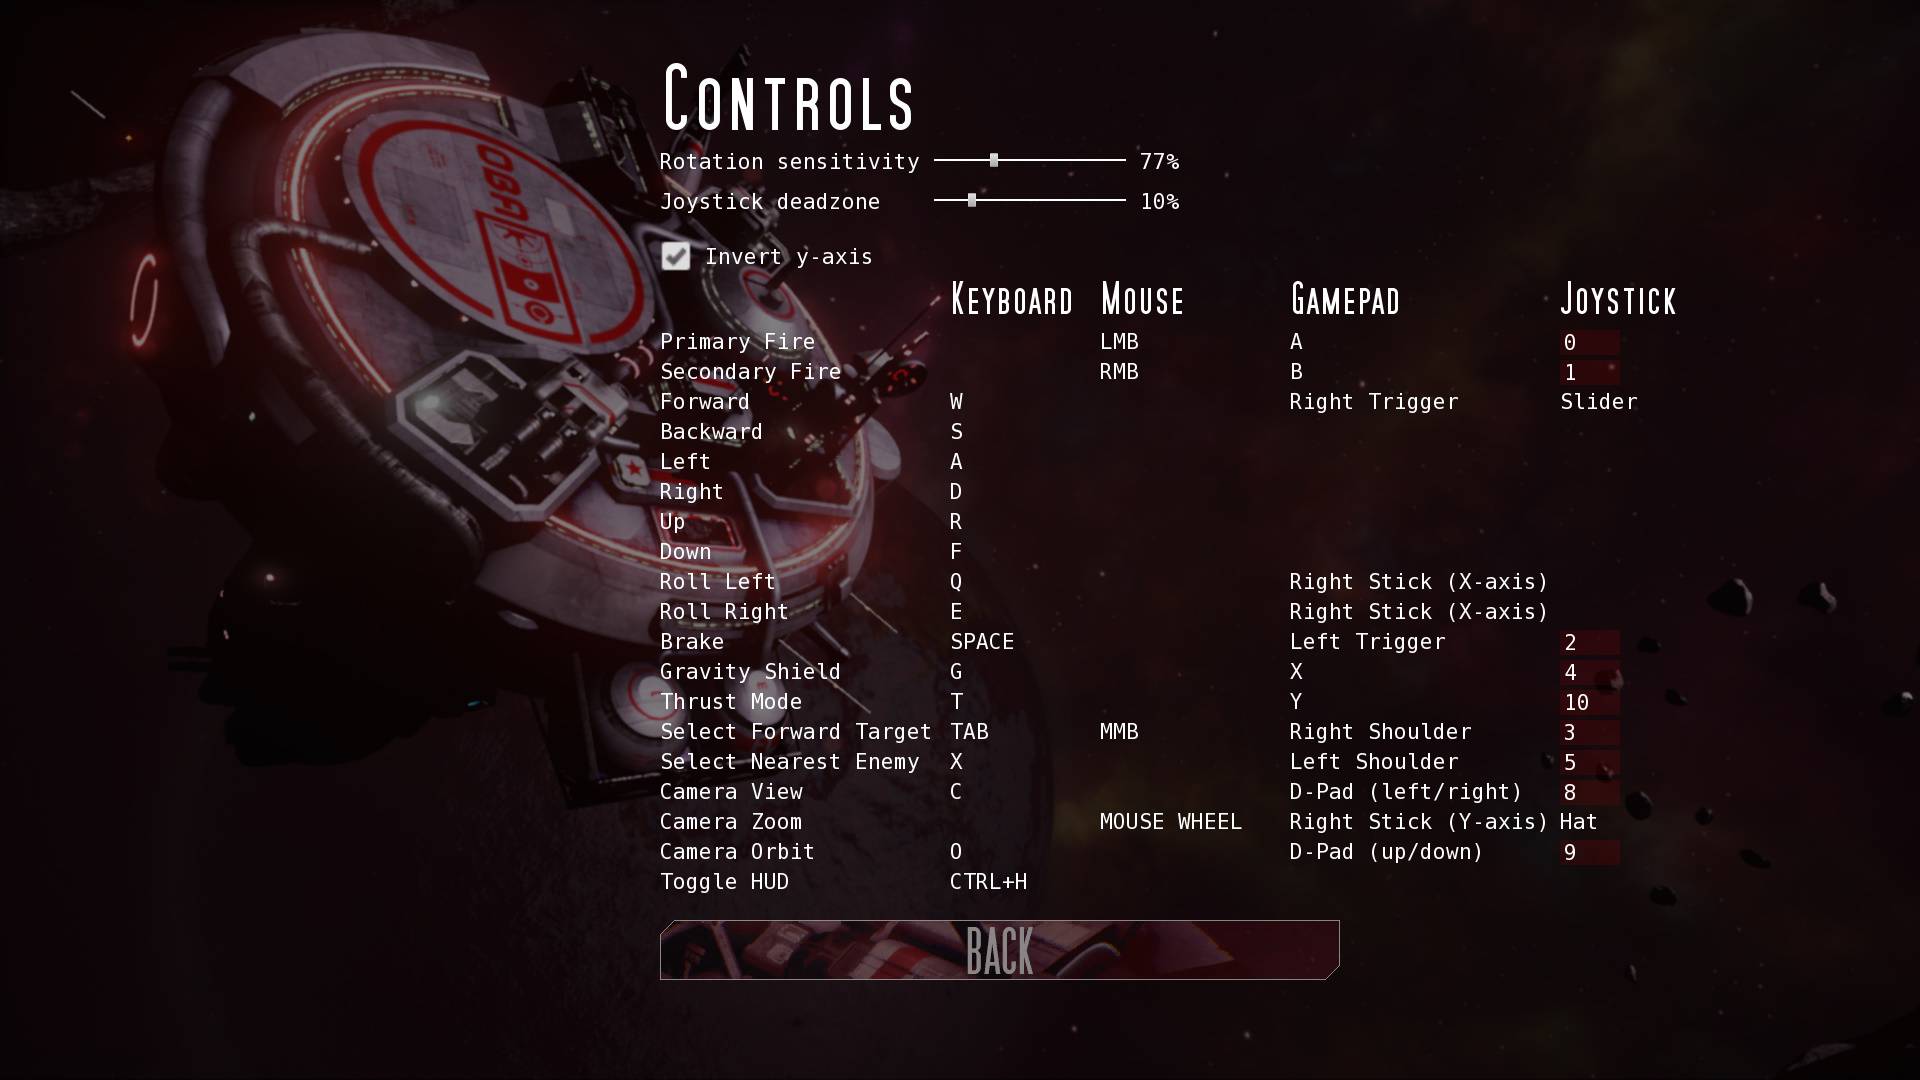 Controls-menu with joystick-mappings